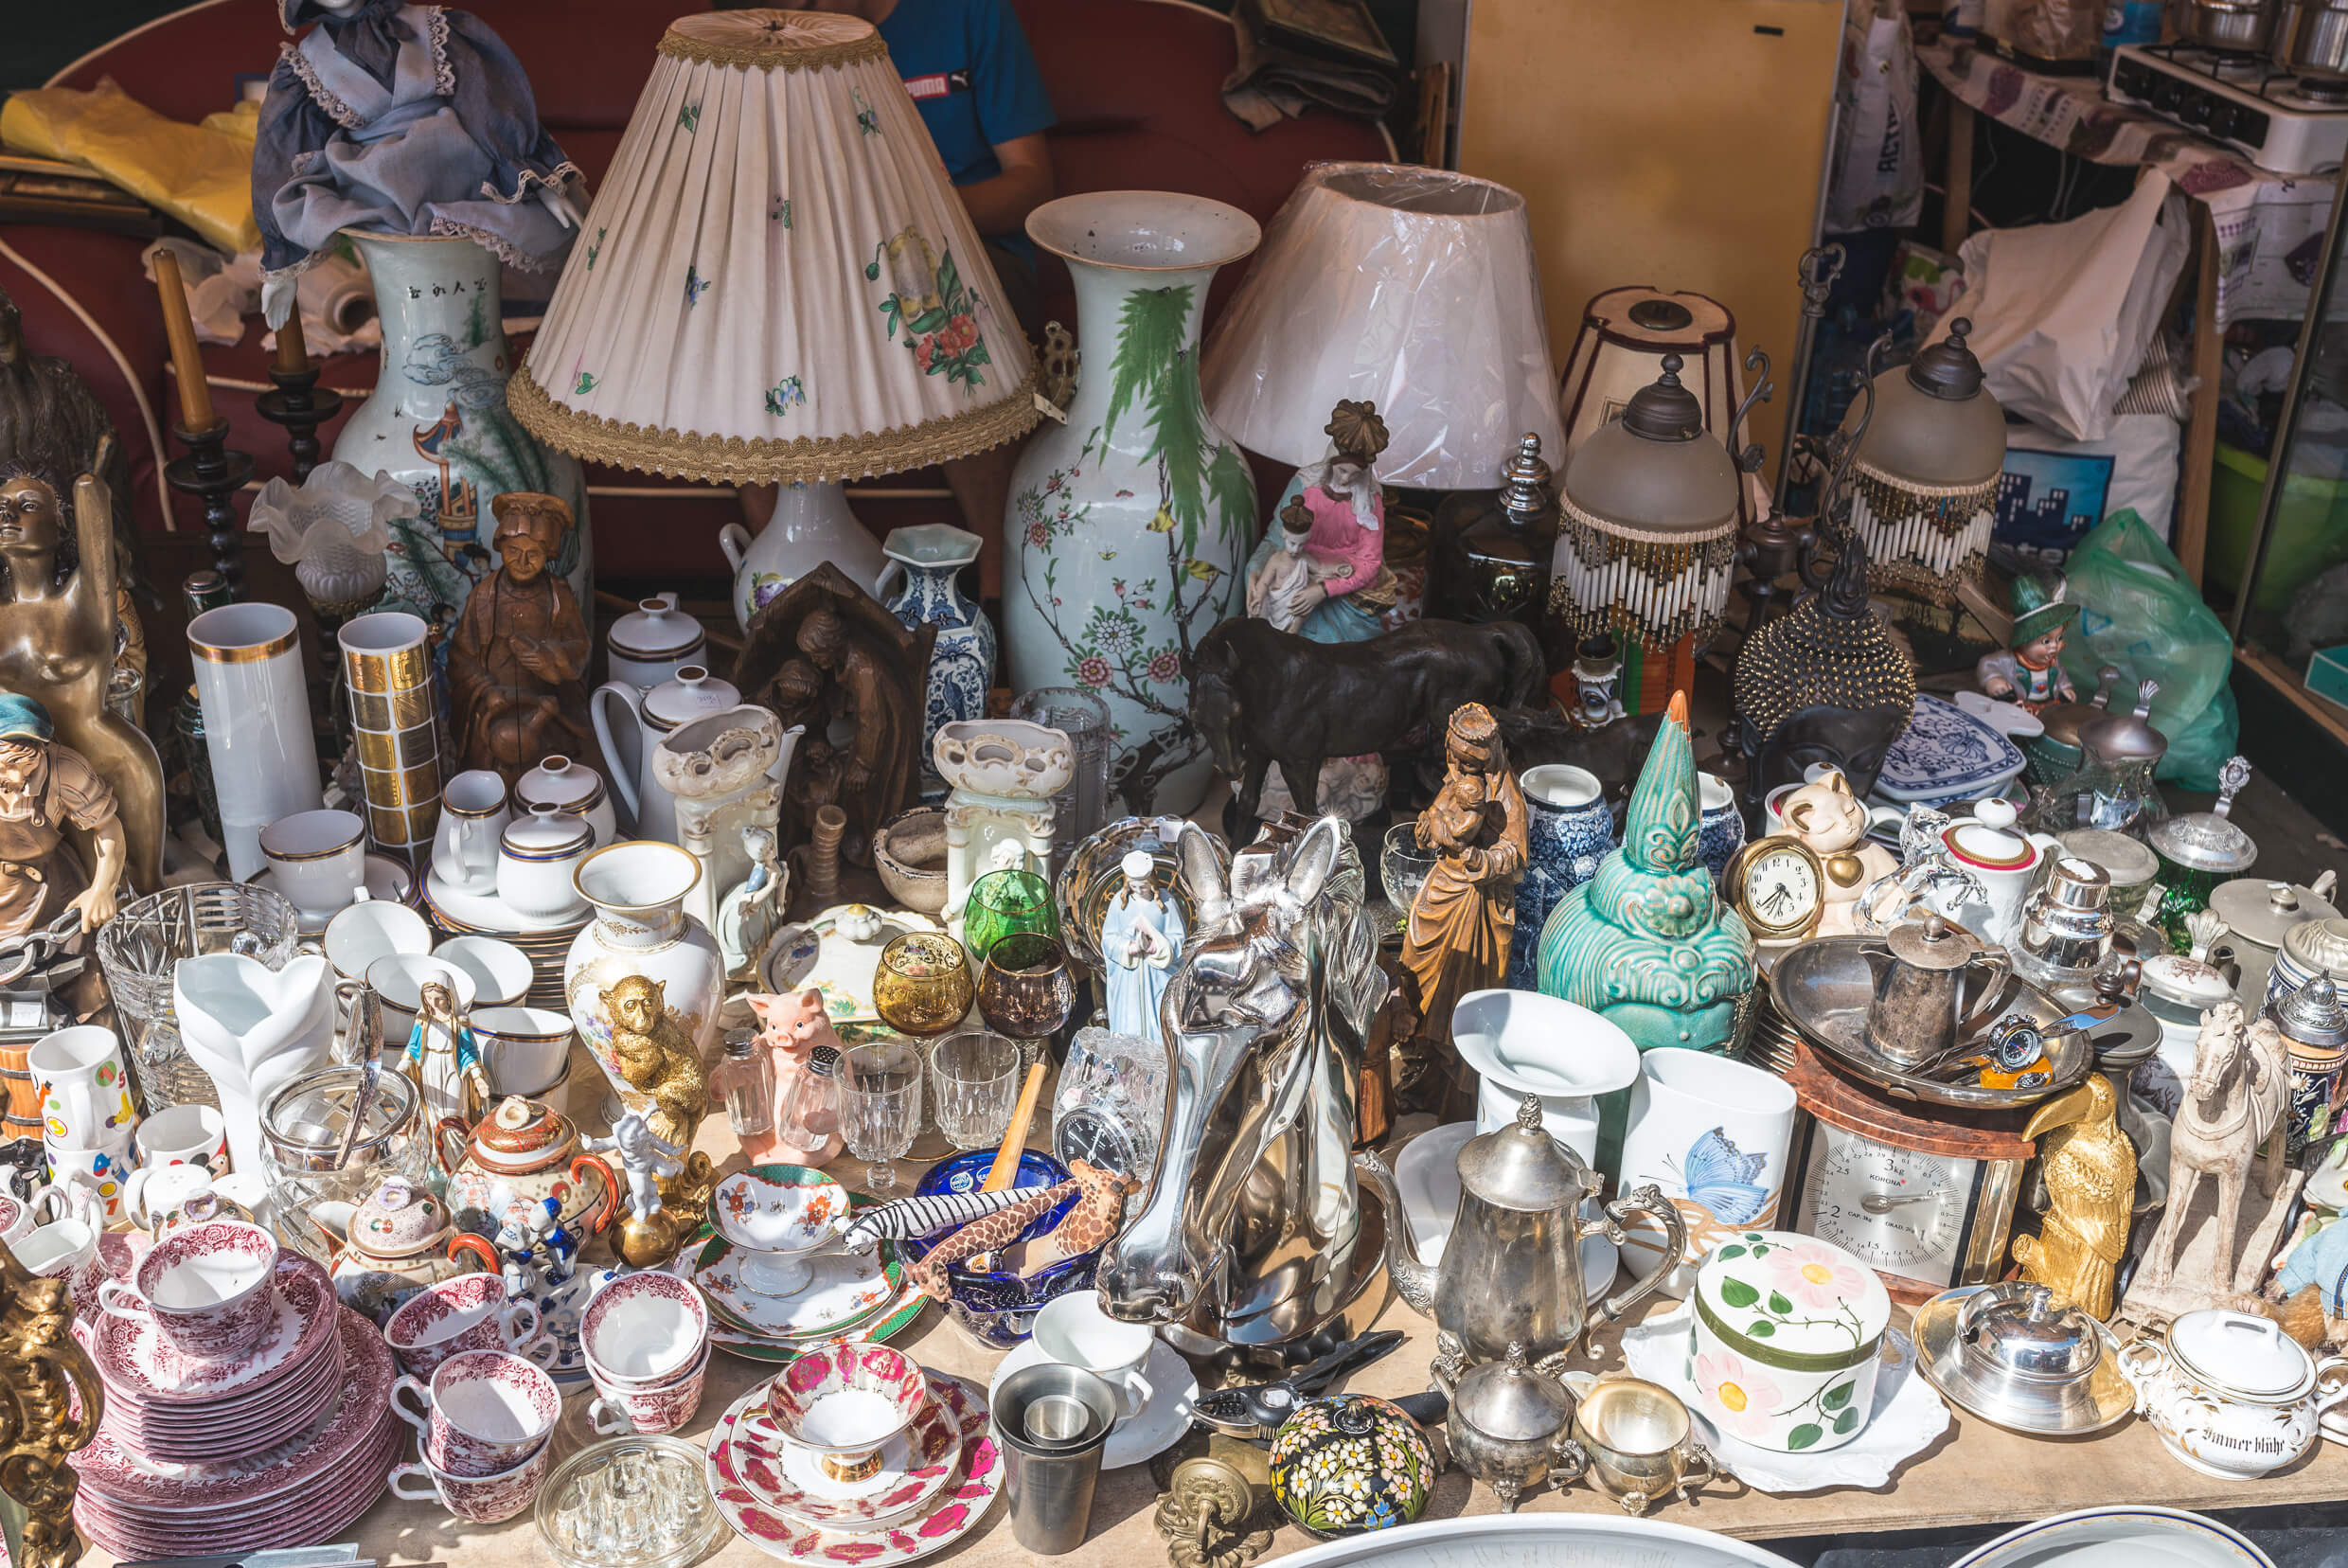 Antiques on the St. Dominic's Fair in Gdańsk